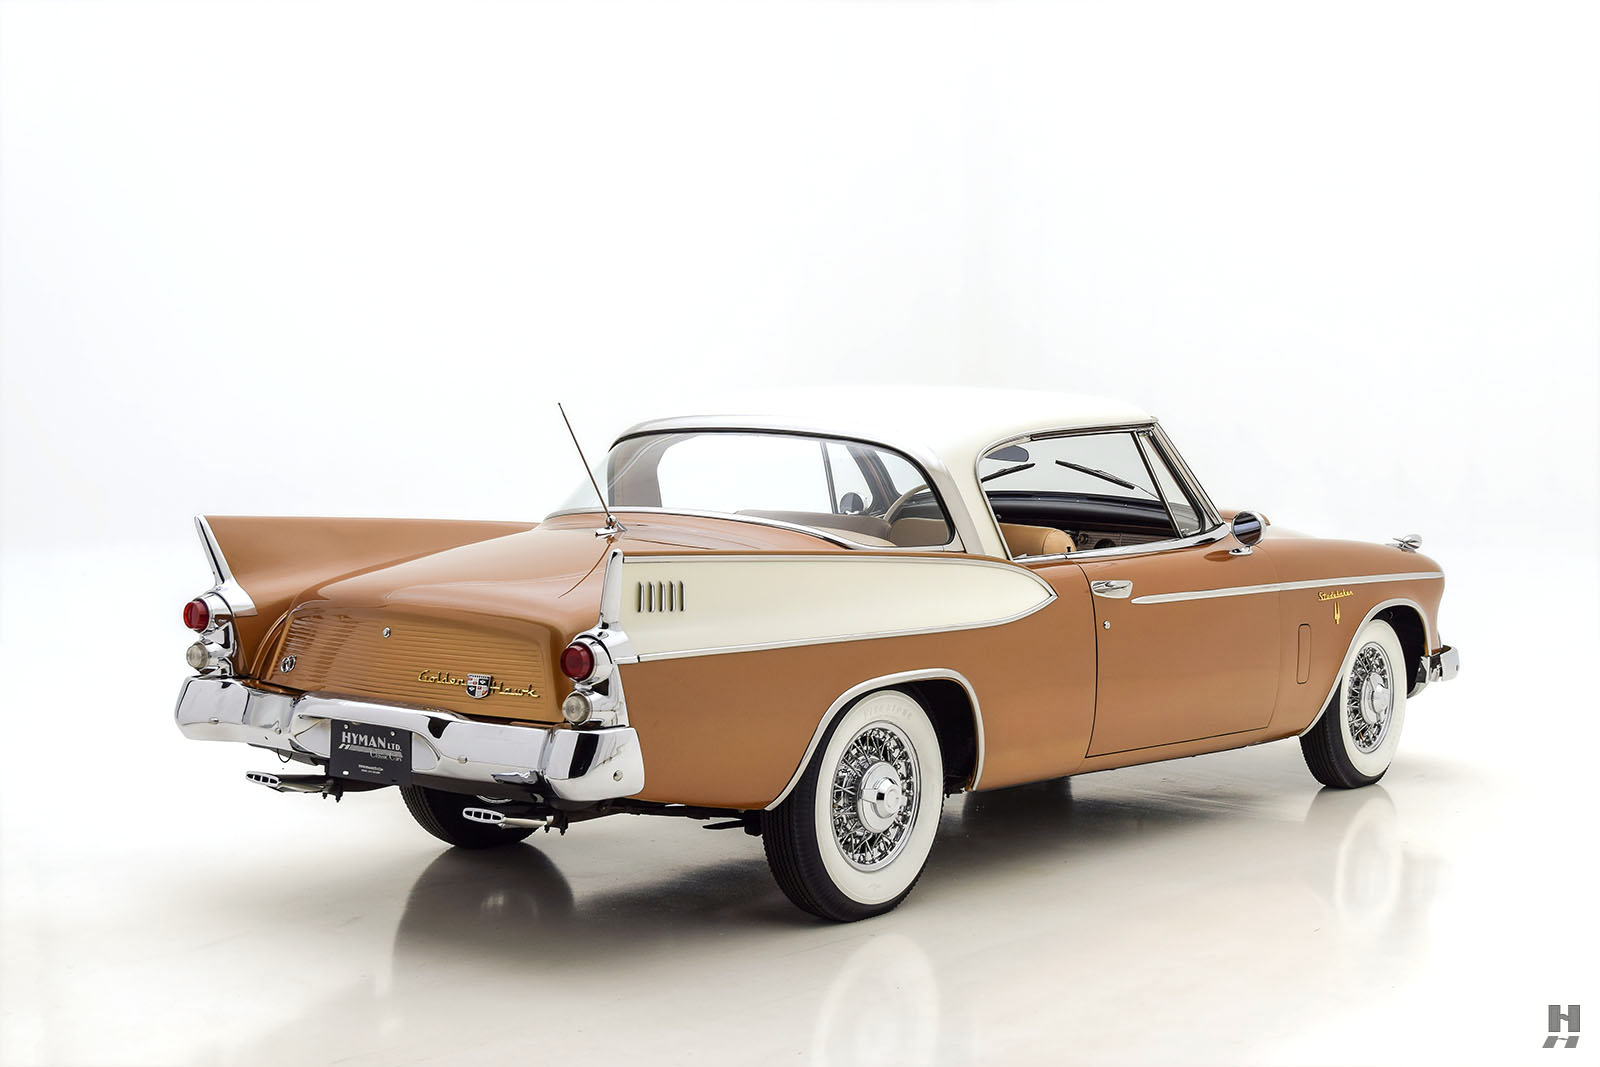 1958 Studebaker Golden Hawk Coupe For Sale | Buy Cars | Hyman LTD